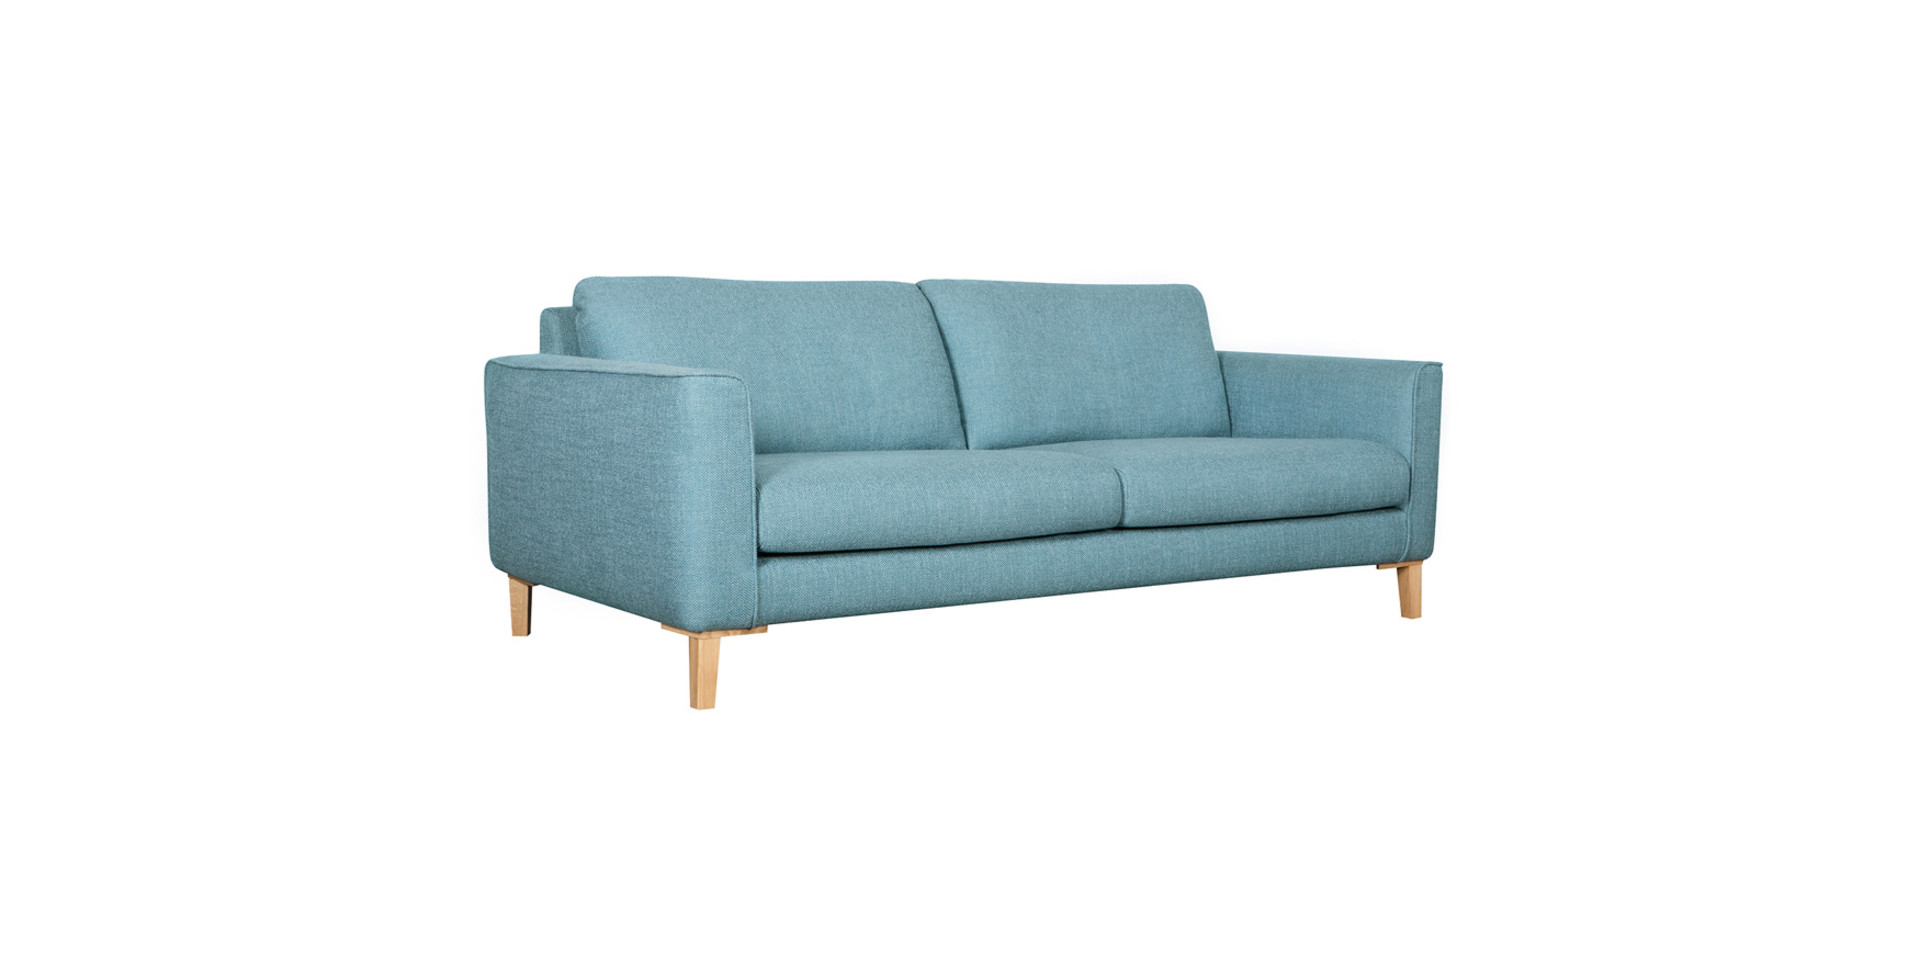 sits-ronja-canape-3seater_bermuda8_turquoise_2